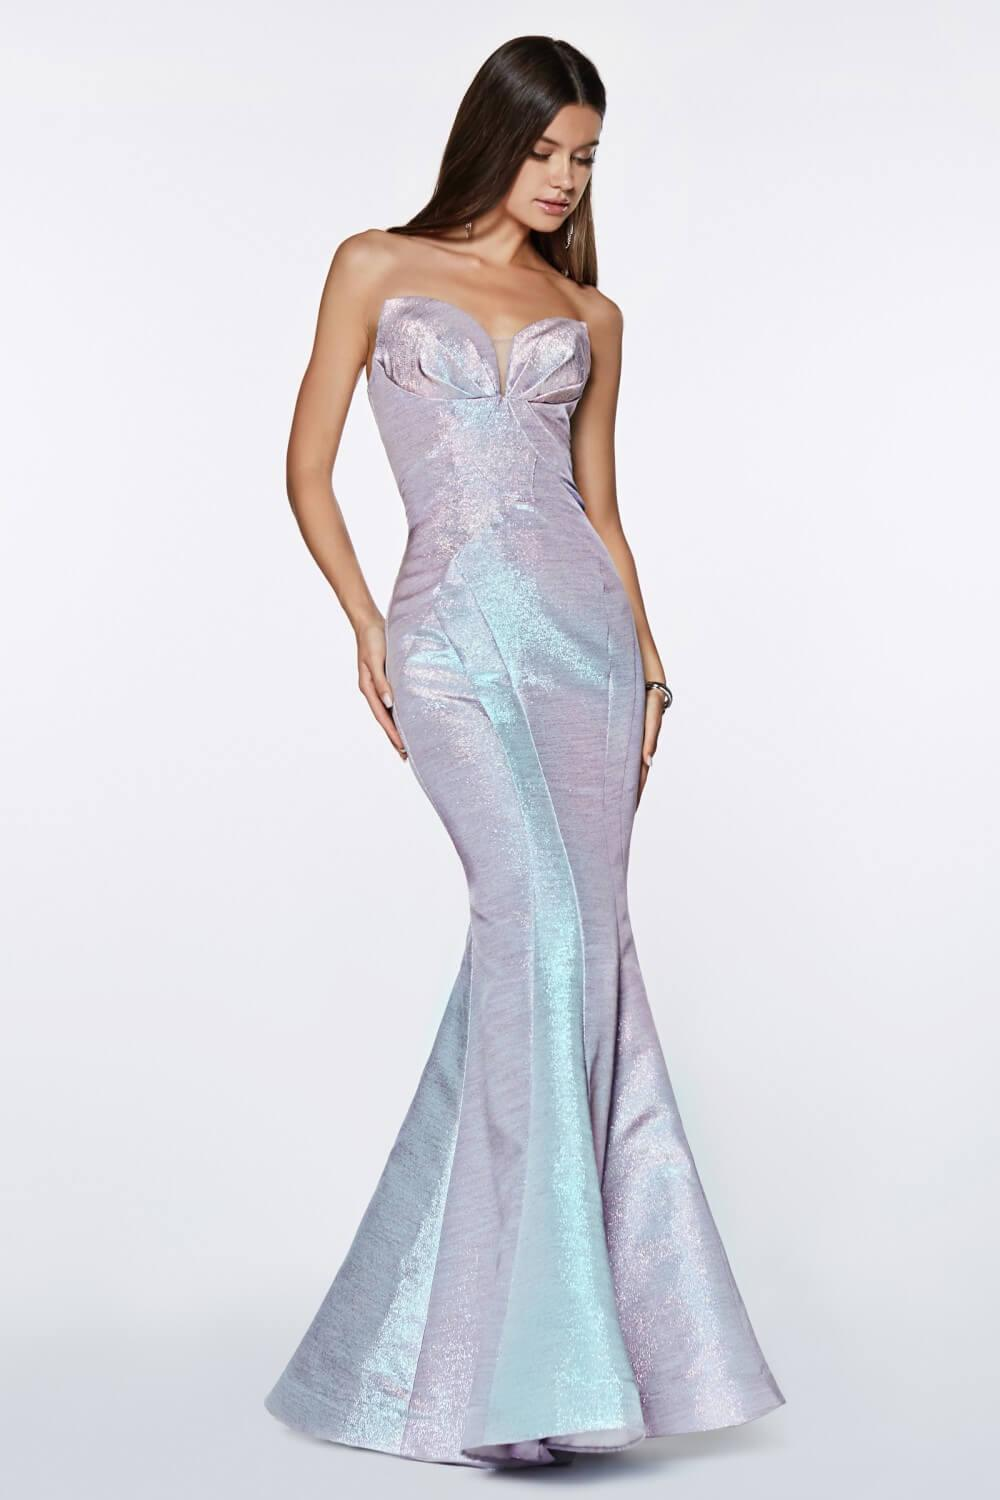 Strapless Long Metallic Mermaid Gown Prom Dress - The Dress Outlet Blue